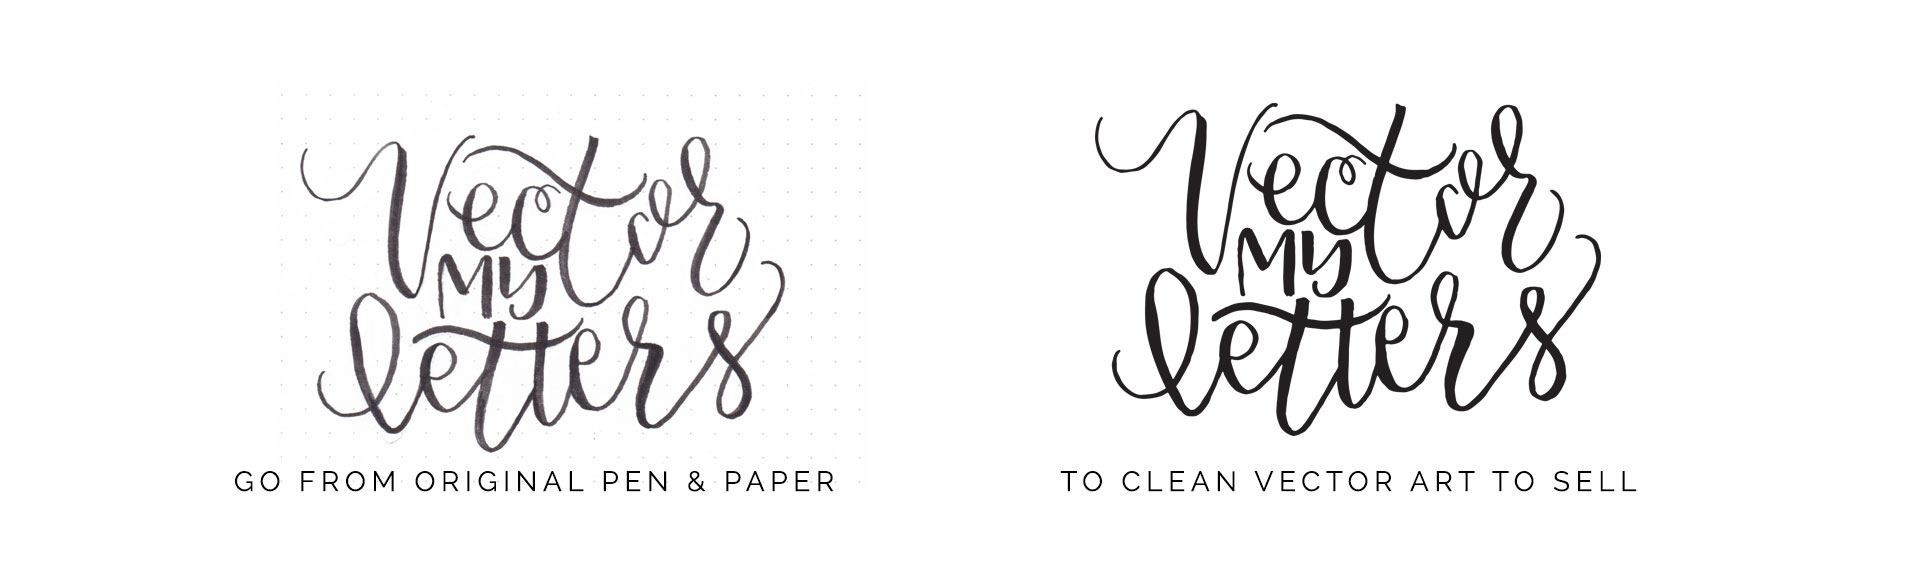 vector-my-letters-before-after